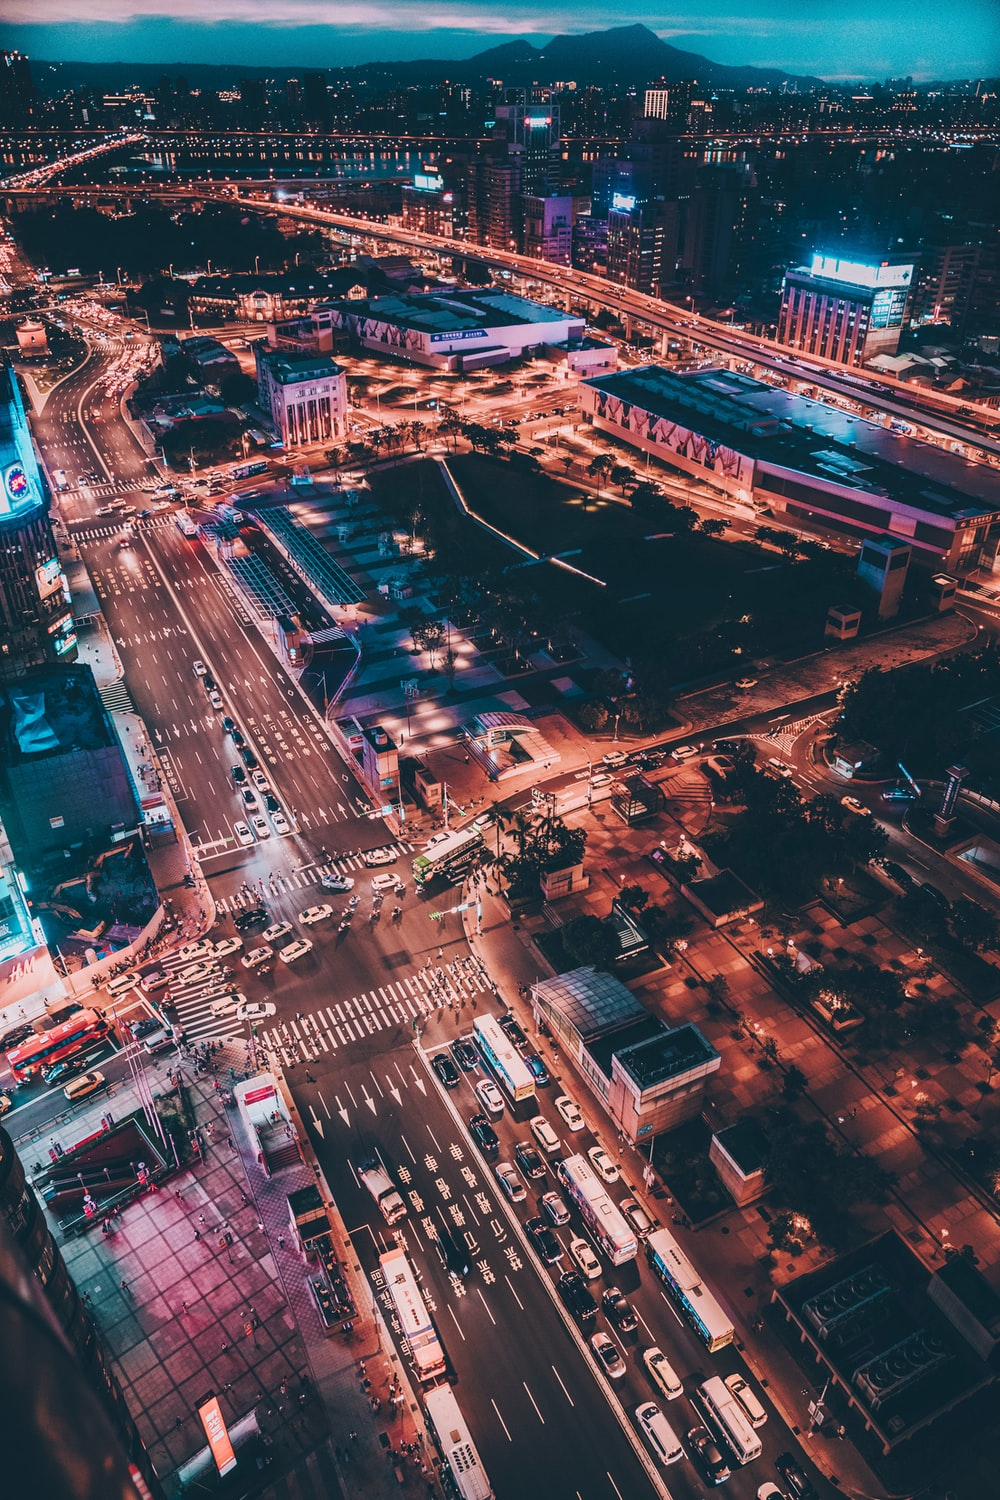 Iphone backgrounds pictures download free images on unsplash drone view of a well lit and busy metropolitan city voltagebd Choice Image